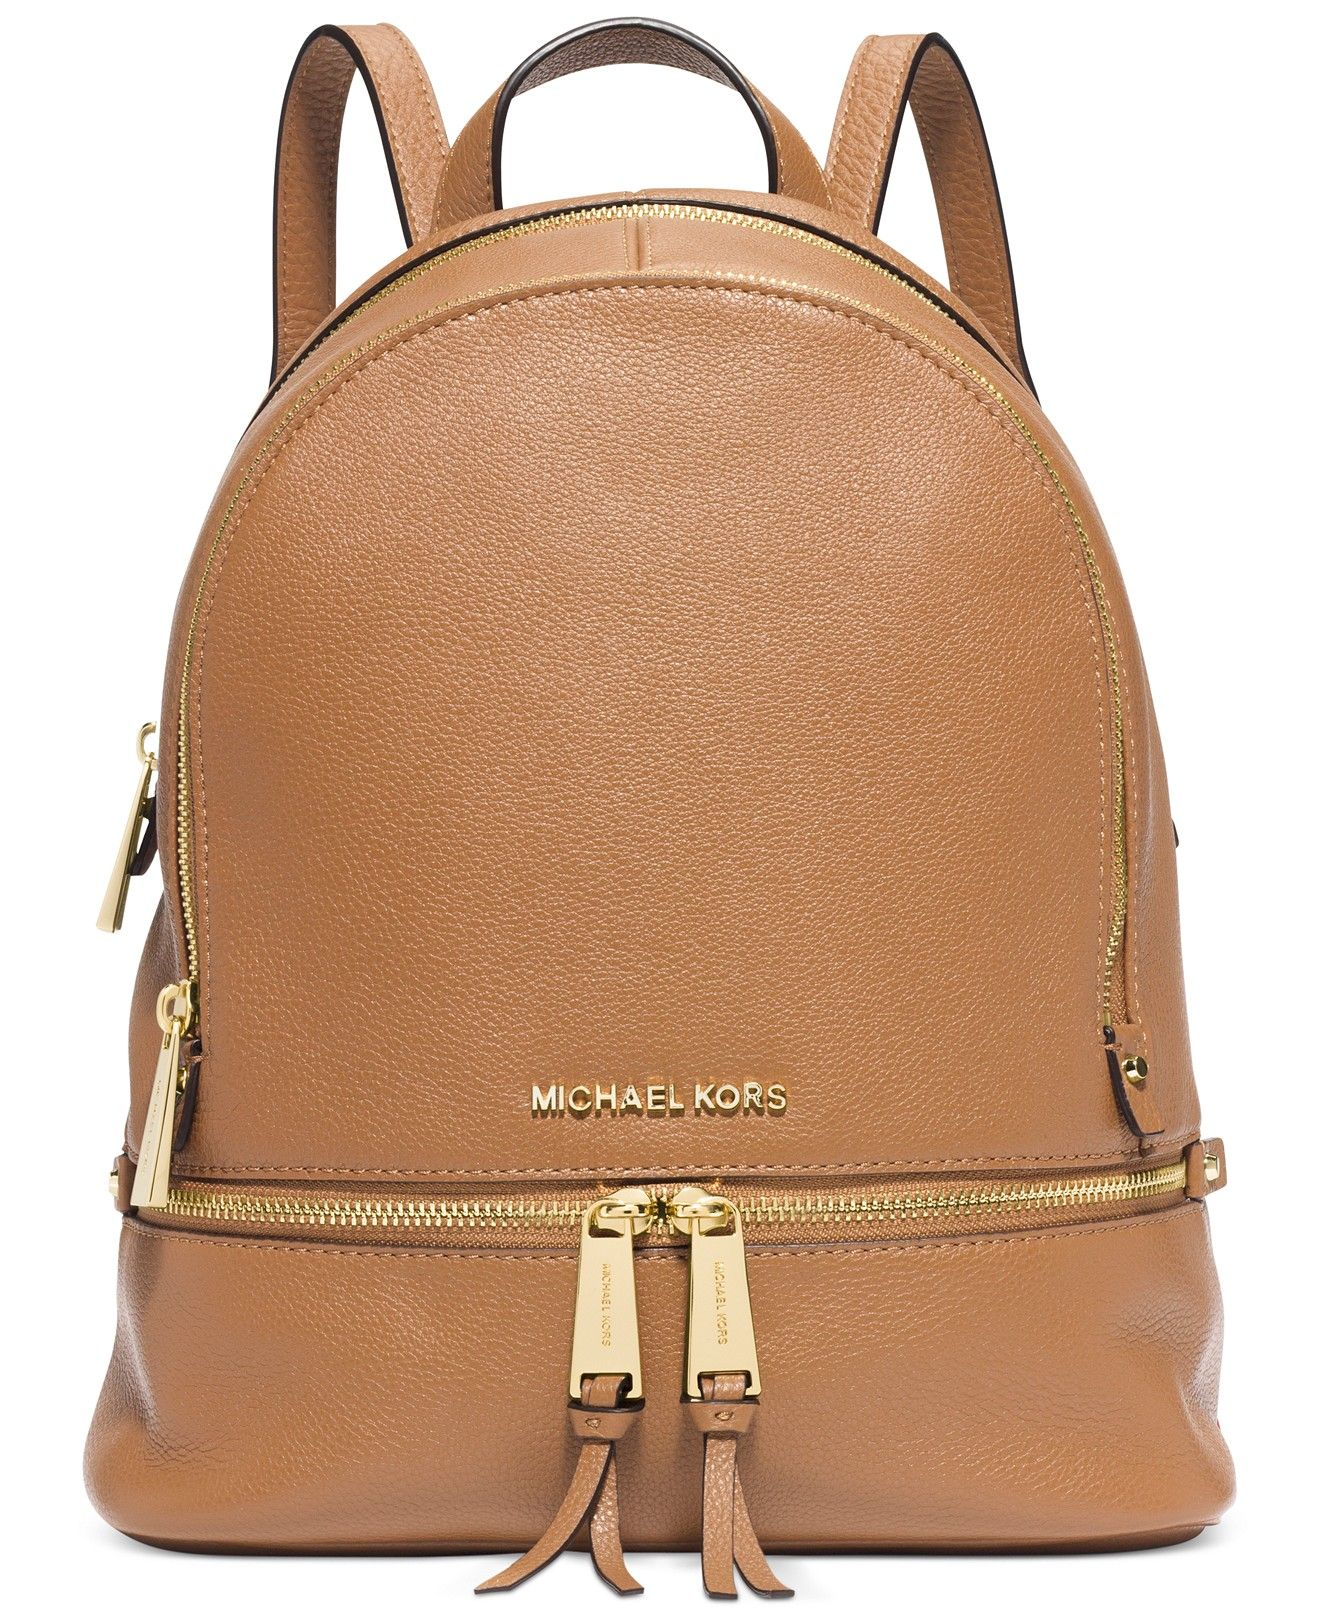 db307b8a82b7d MICHAEL Michael Kors Rhea Zip Small Backpack - Handbags   Accessories -  Macy s